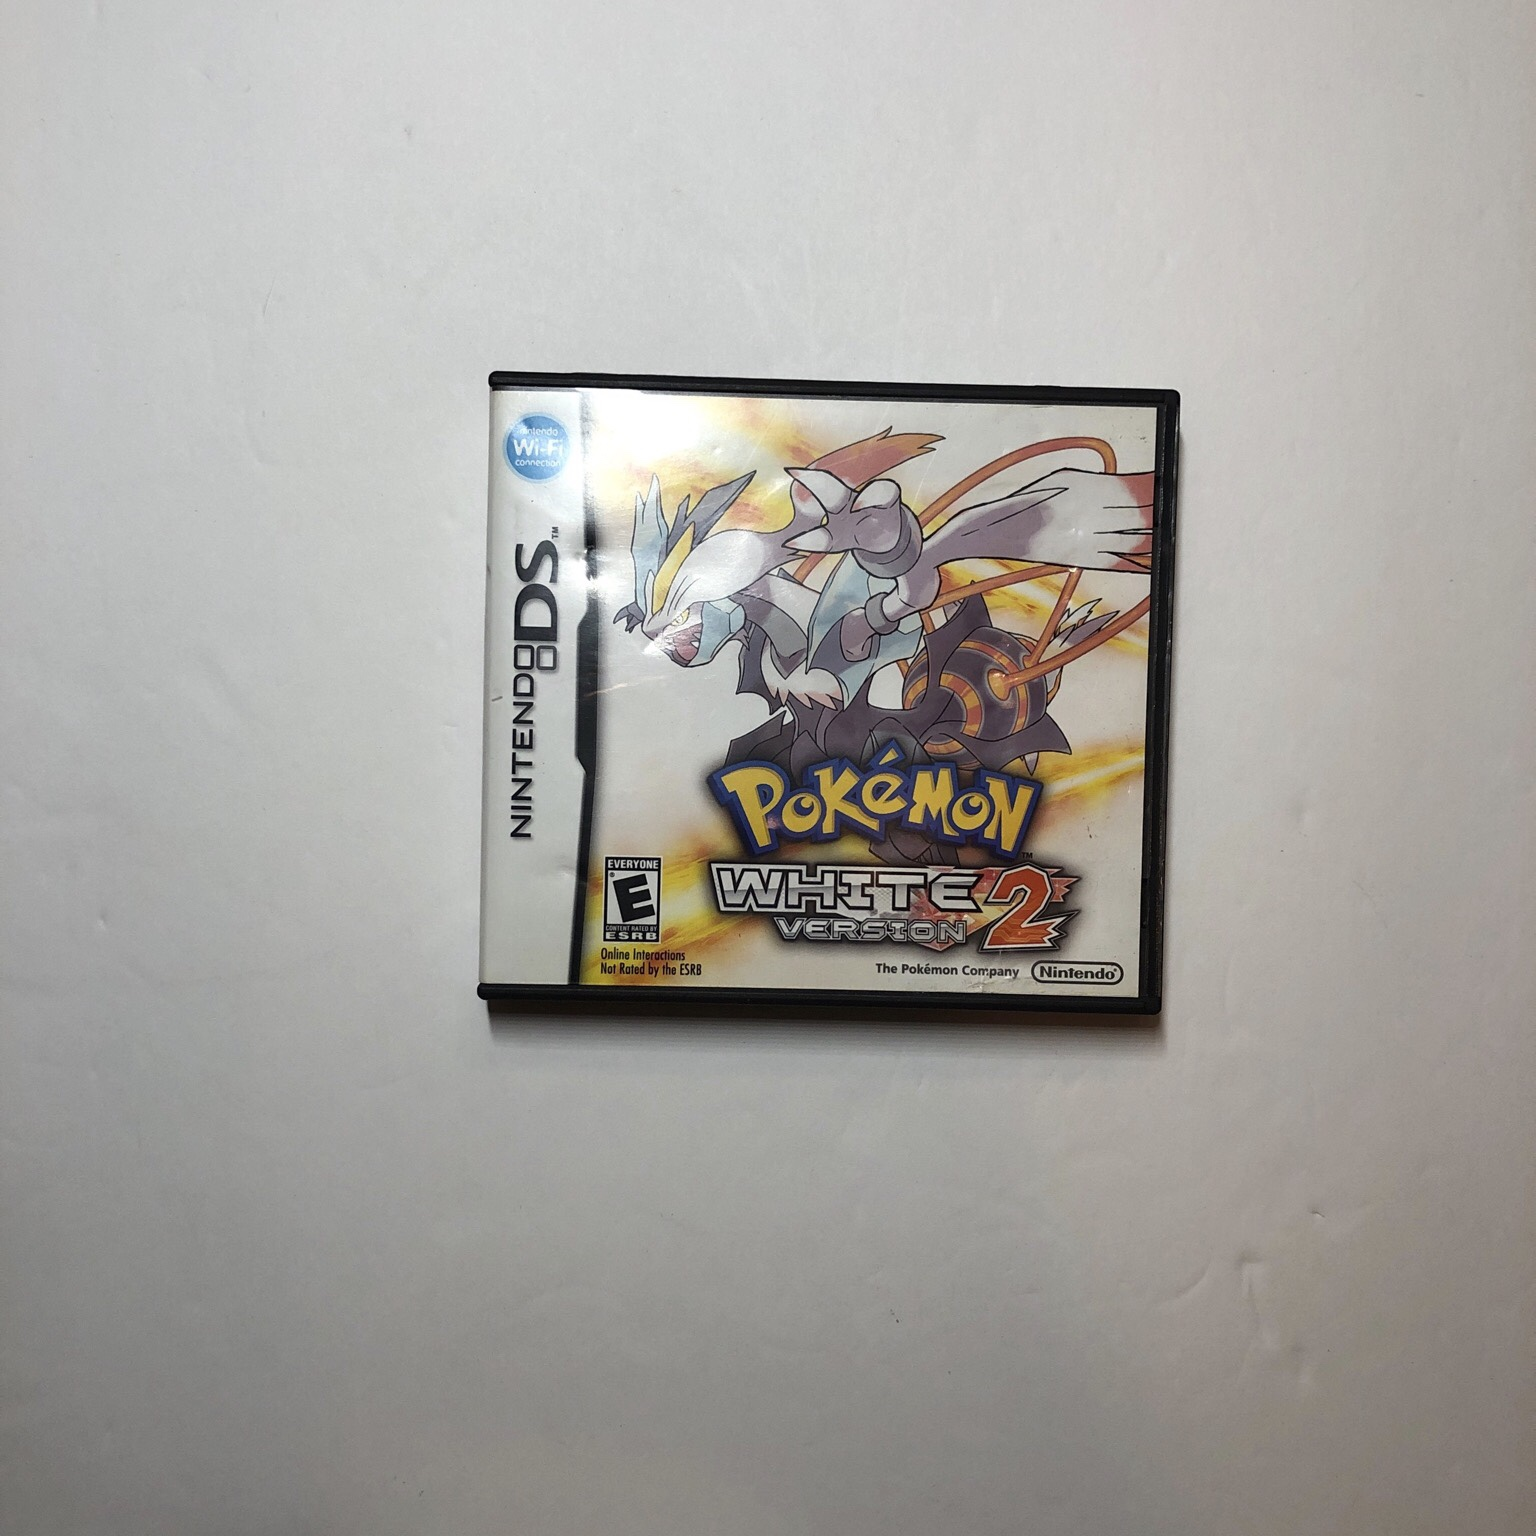 Pokémon White 2 Original box and manuals Nintendo DS - Depop